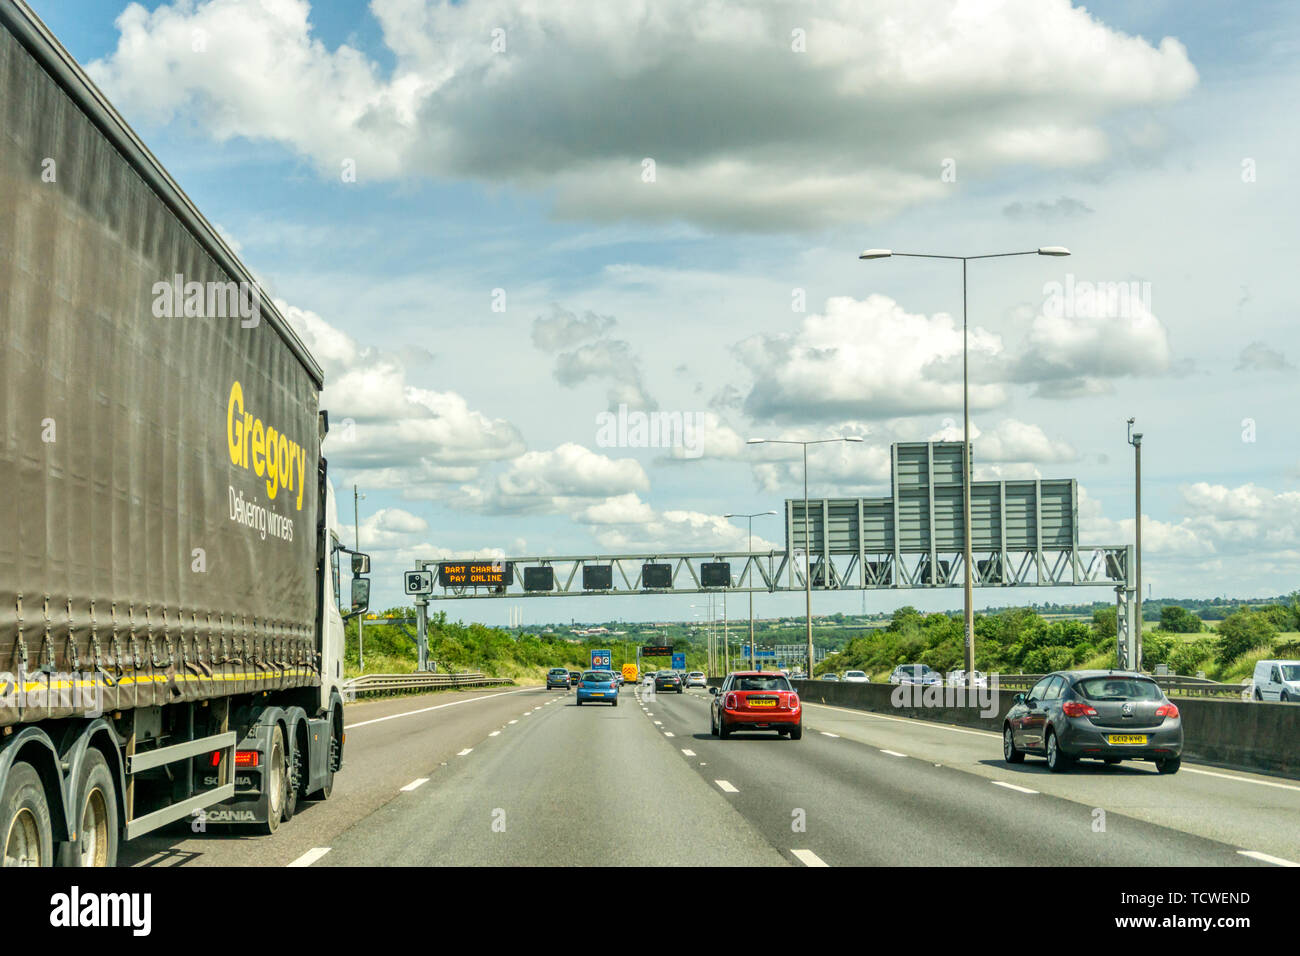 M25 London Orbital road between J3 and J2 in Kent approaching the Dartford Tunnel from south. With gantry sign reminding drivers to pay Dart Charge. - Stock Image